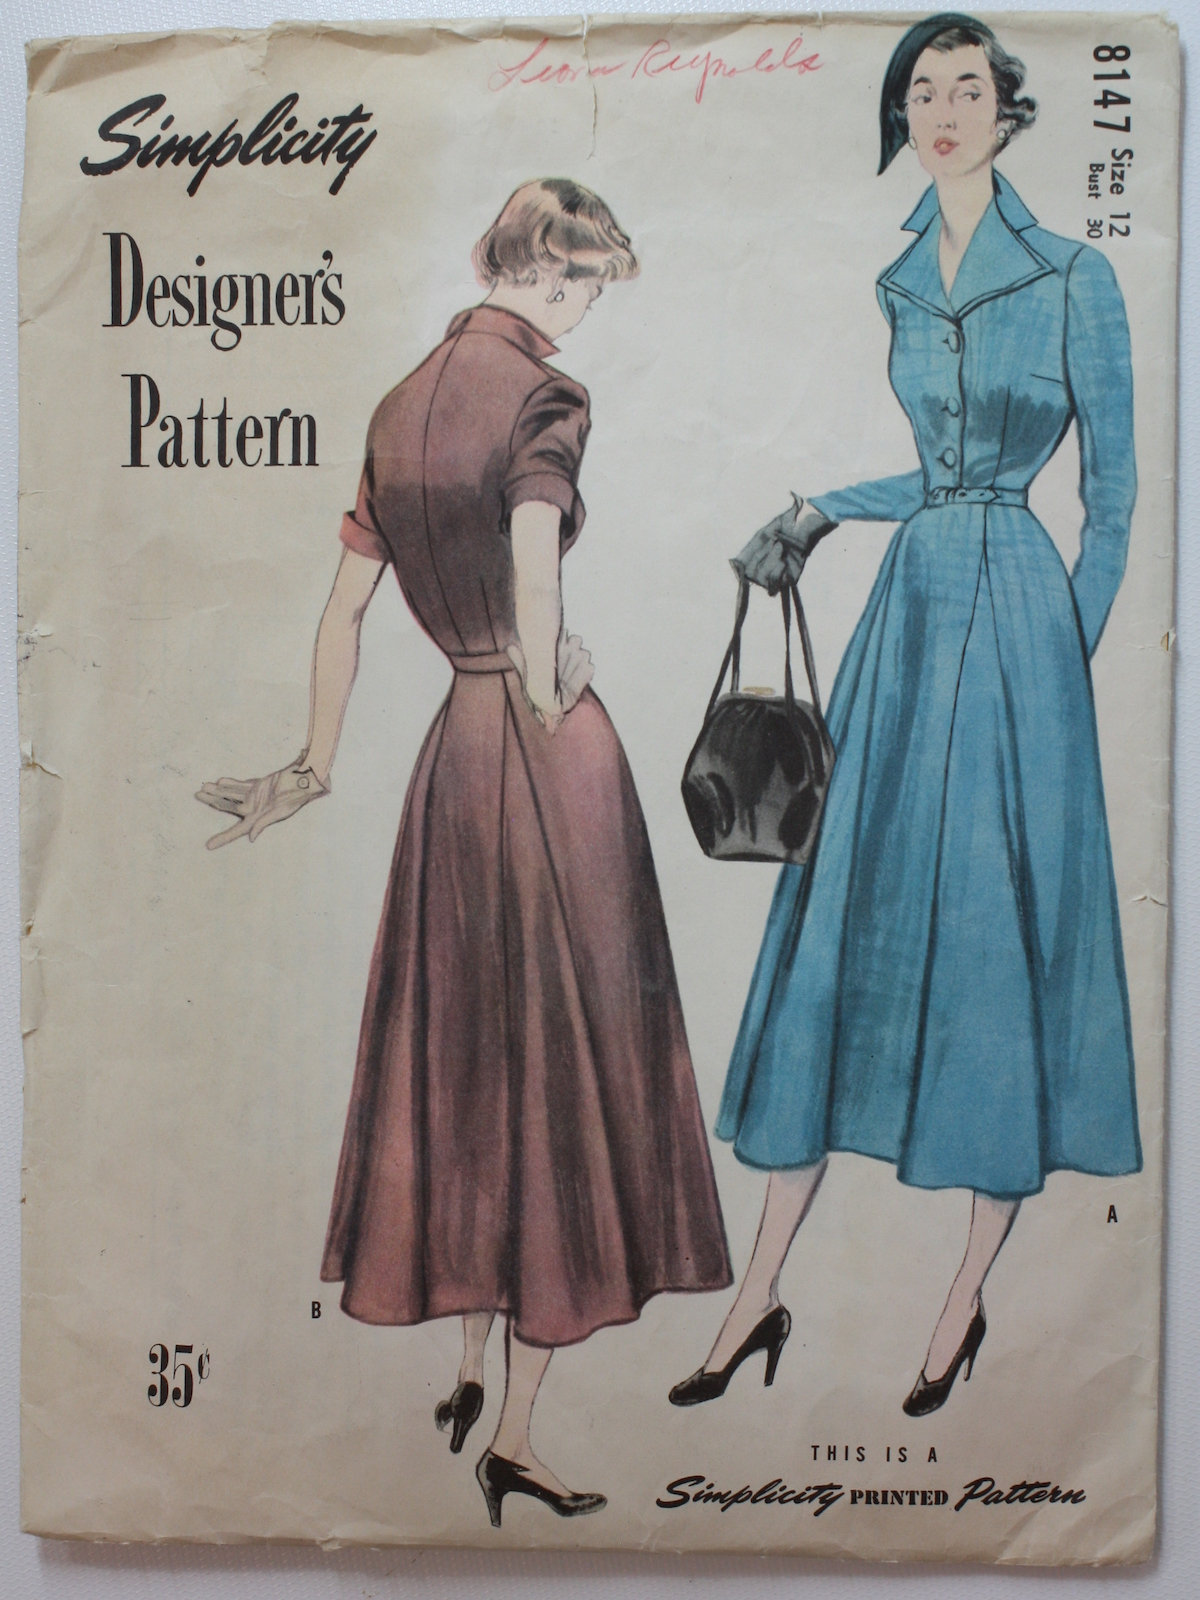 40s Sewing Pattern 40s Simplicity Designer Pattern No 8147 Womens Four Set In Godets Animate The Slightly Flared Skirt Of This Wearable Tailored Dress The Straight Sleeve Is Set Into A Blouse Which